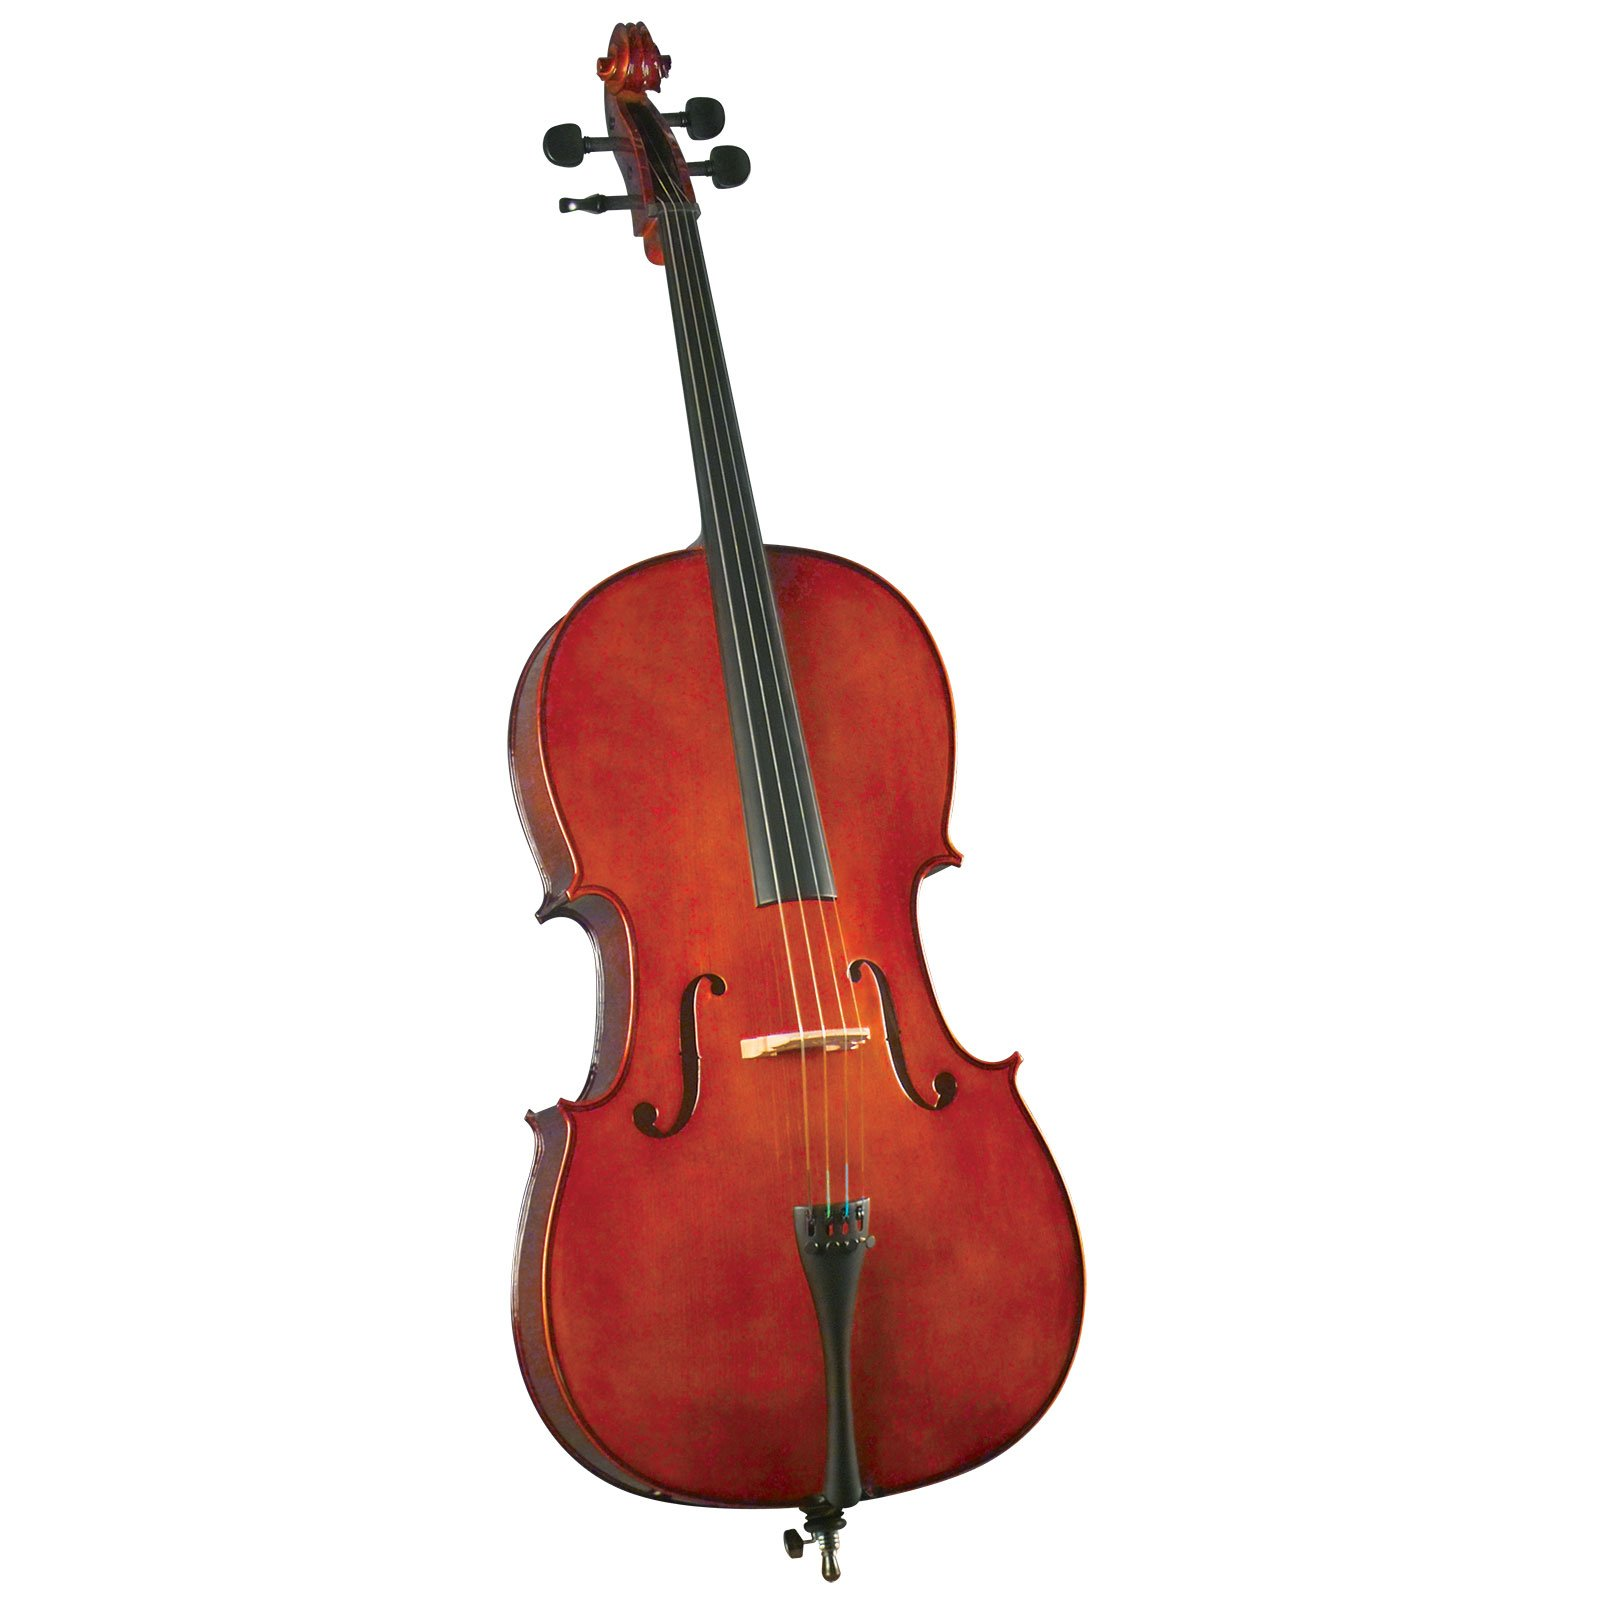 Cervini HC-100 Novice Cello Outfit - 4/4 Size by Cervini